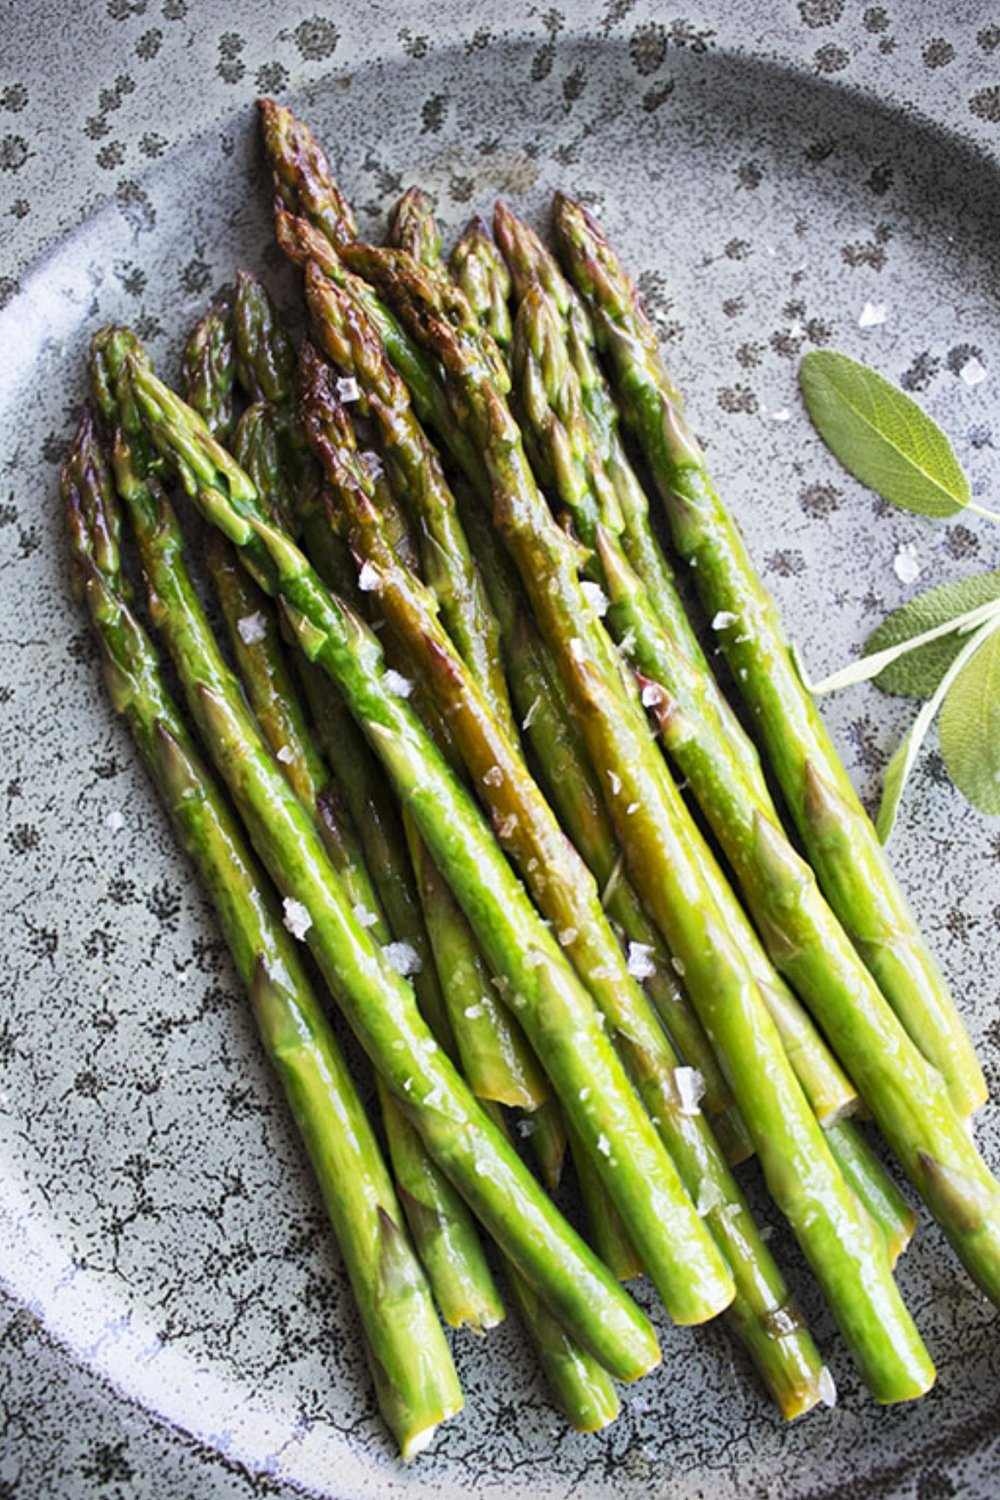 Ingredients:   1 bunch of asparagus  15-20 gr grass fed butter  1 lemon juice  Handful of sage leaves   Pinch of Maldon salt   Method :   1. Put the pan at the stove. Let the butter warm up at the medium heat.  2. Rinse the asparagus and cut the hard lower part.  3.  Add the sage leaves to pan and the juice of half a lemon. Let it caramelise for 1 minute.   4. Place the asparagus to the pan, toss and coat it in the butter-lemon mixture.   5. Let it cook for 5-7 minutes.  6. At the end, add the juce of another half of the lemon, sprinkle with Maldon salt and enjoy!